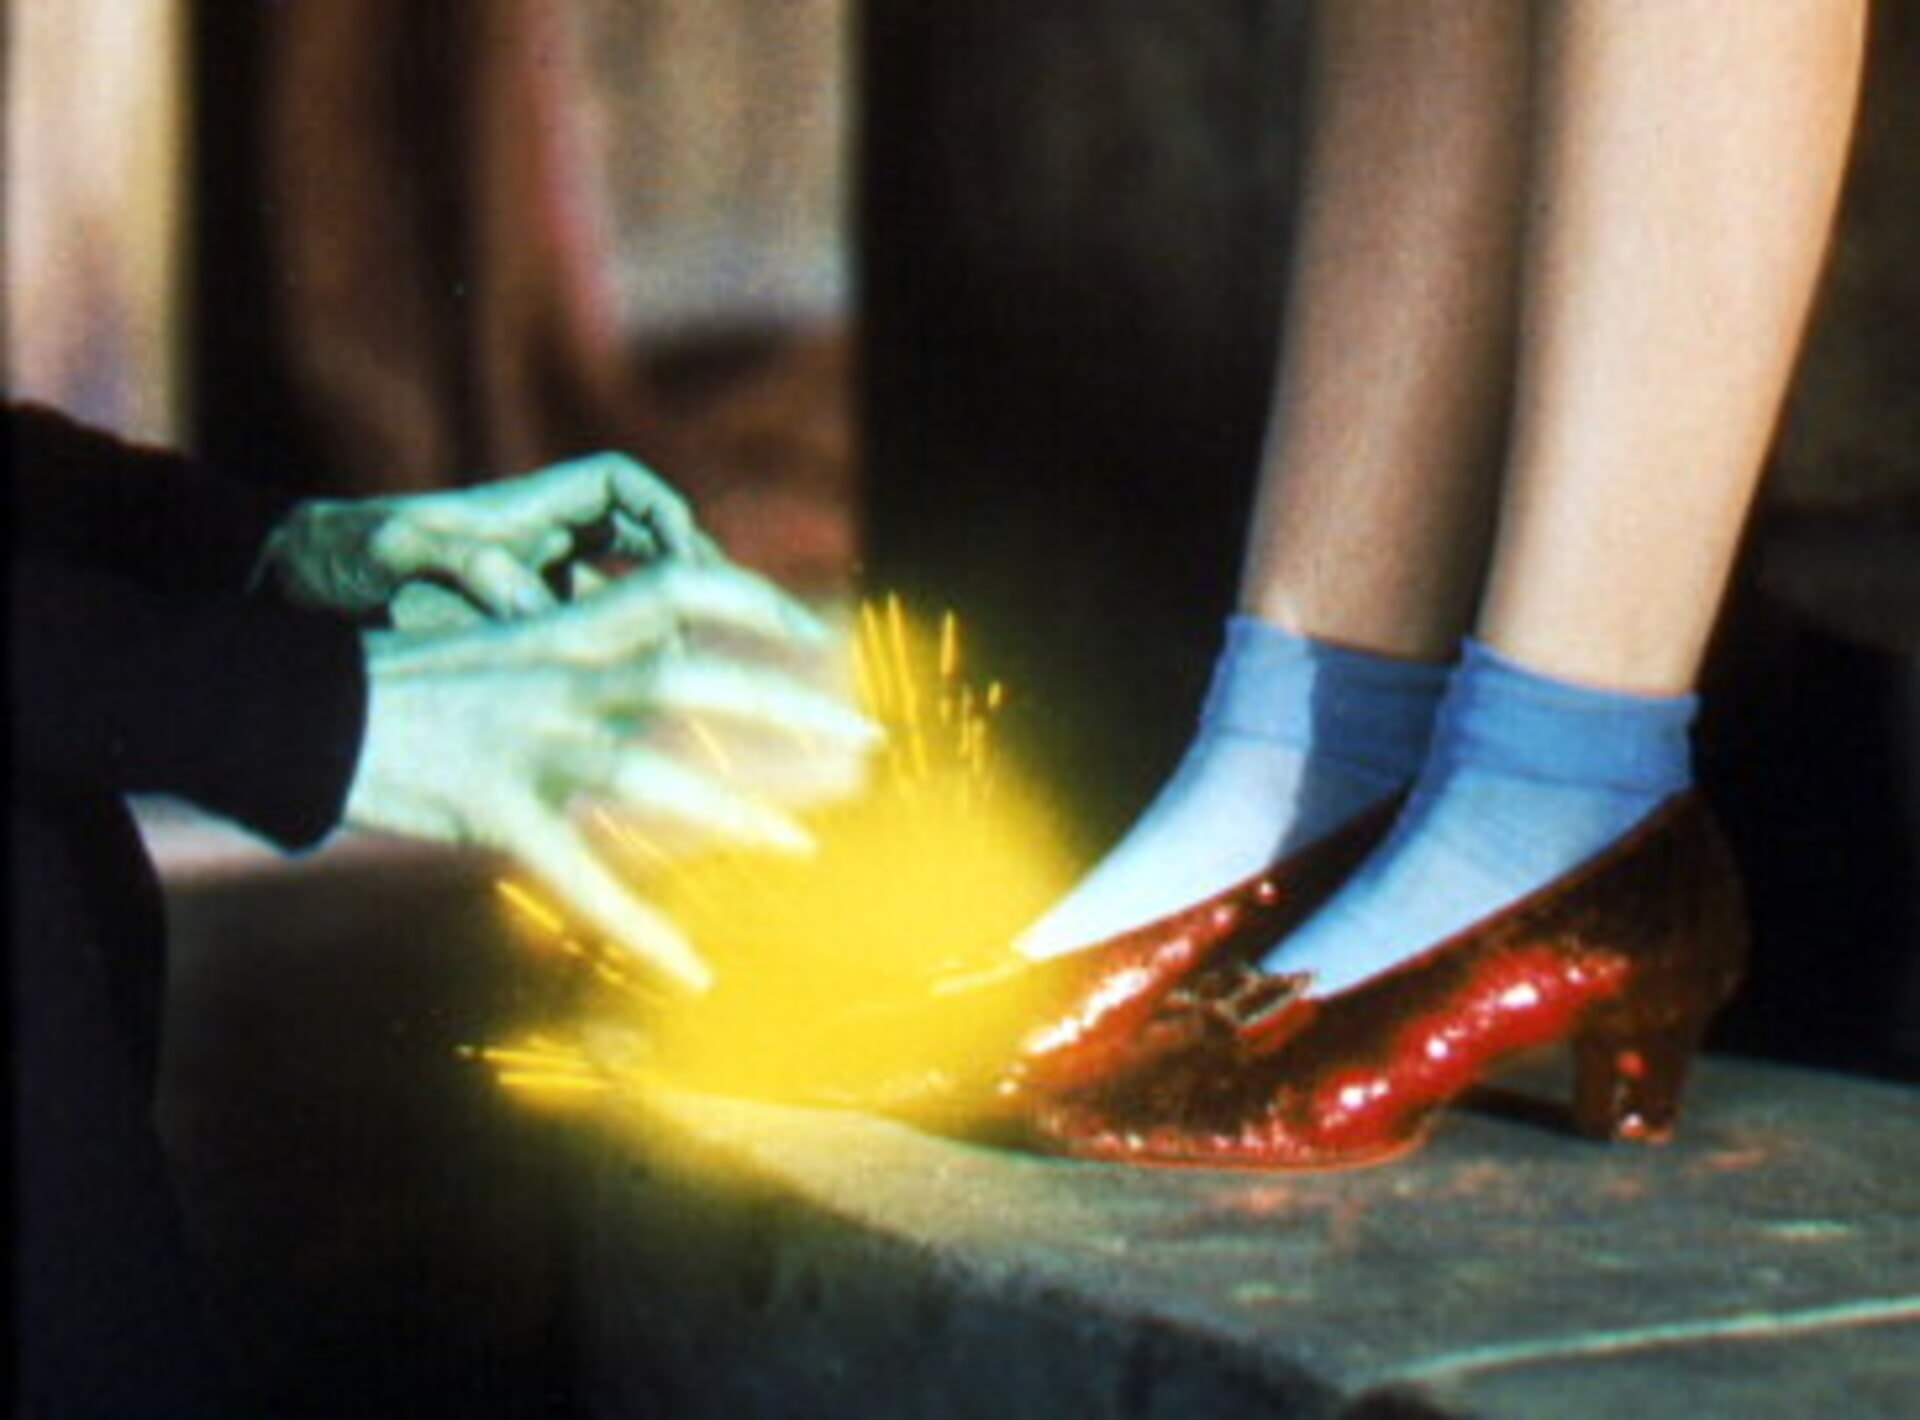 The Wizard of Oz - Image 2